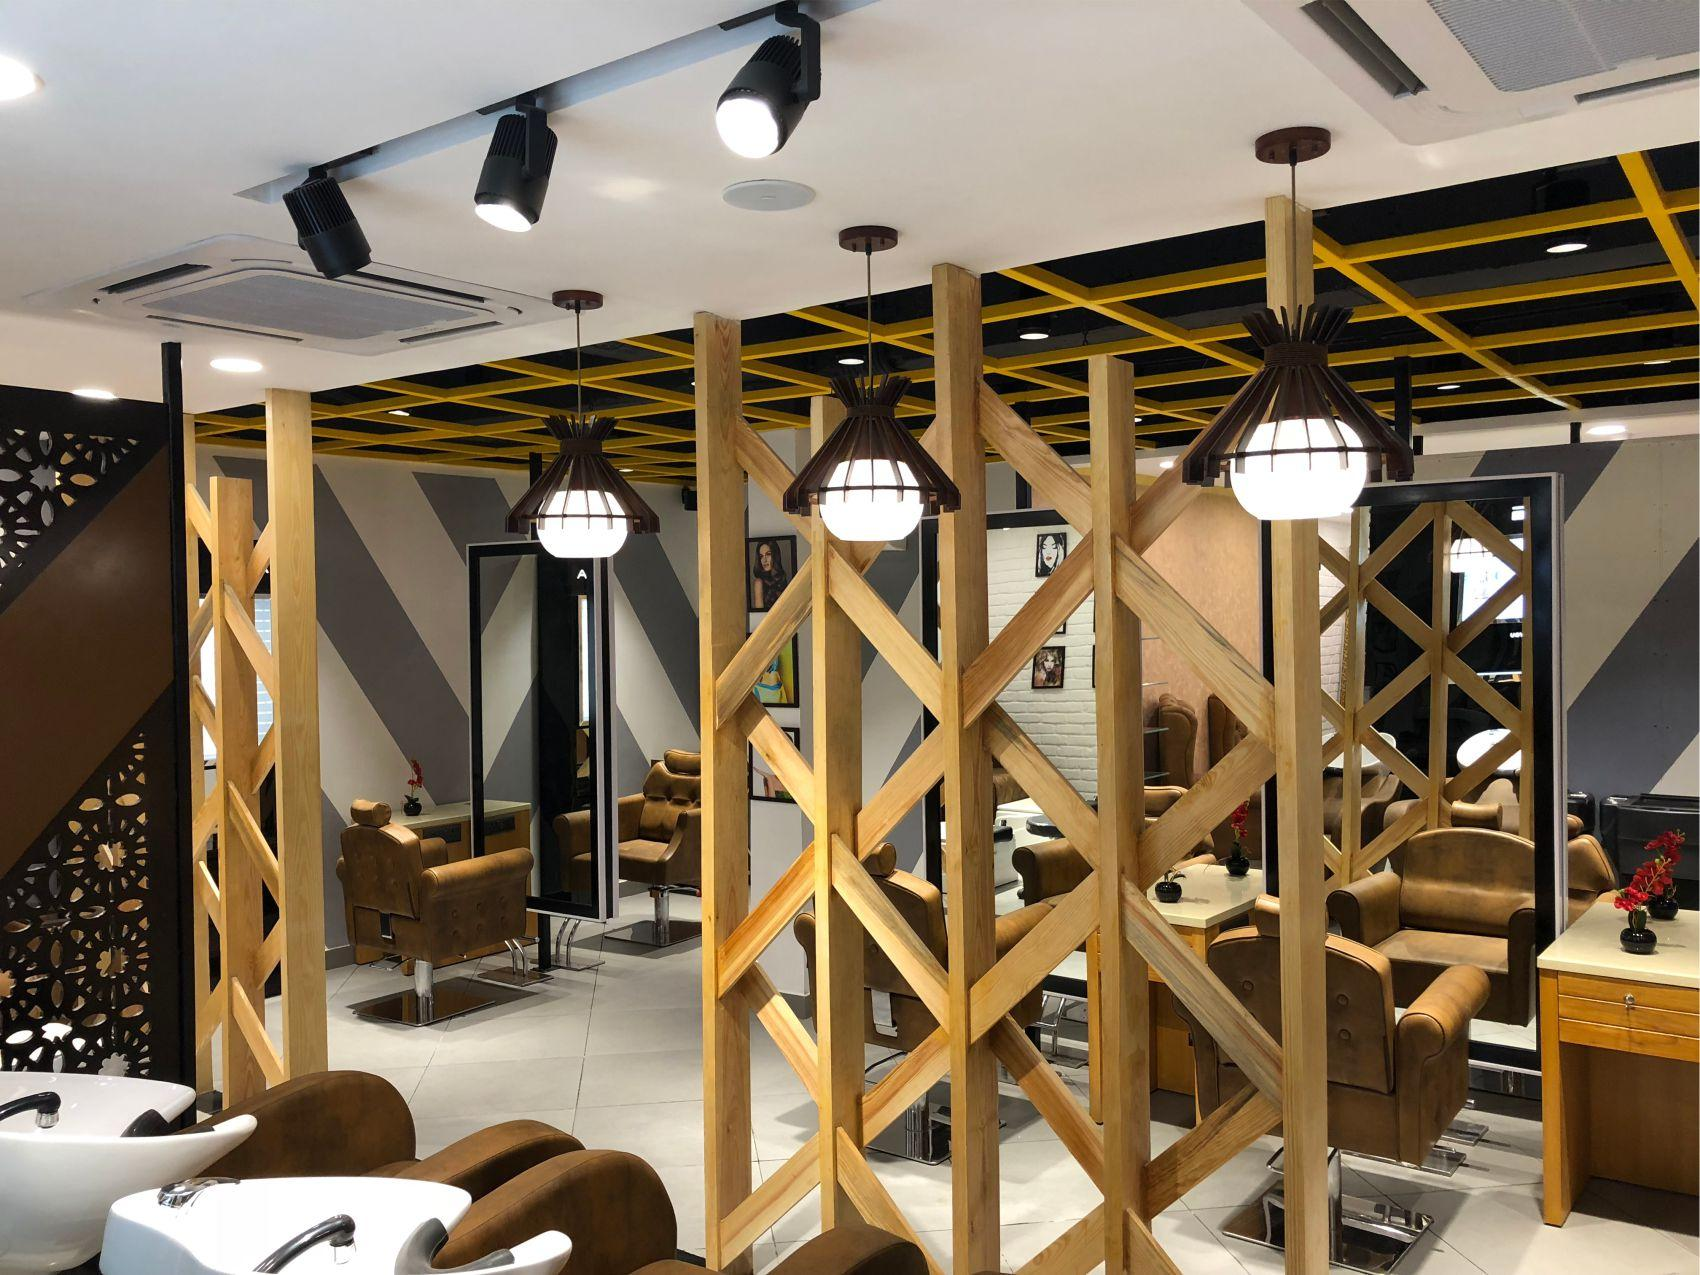 Hire Best salon interior designers in Delhi NCR